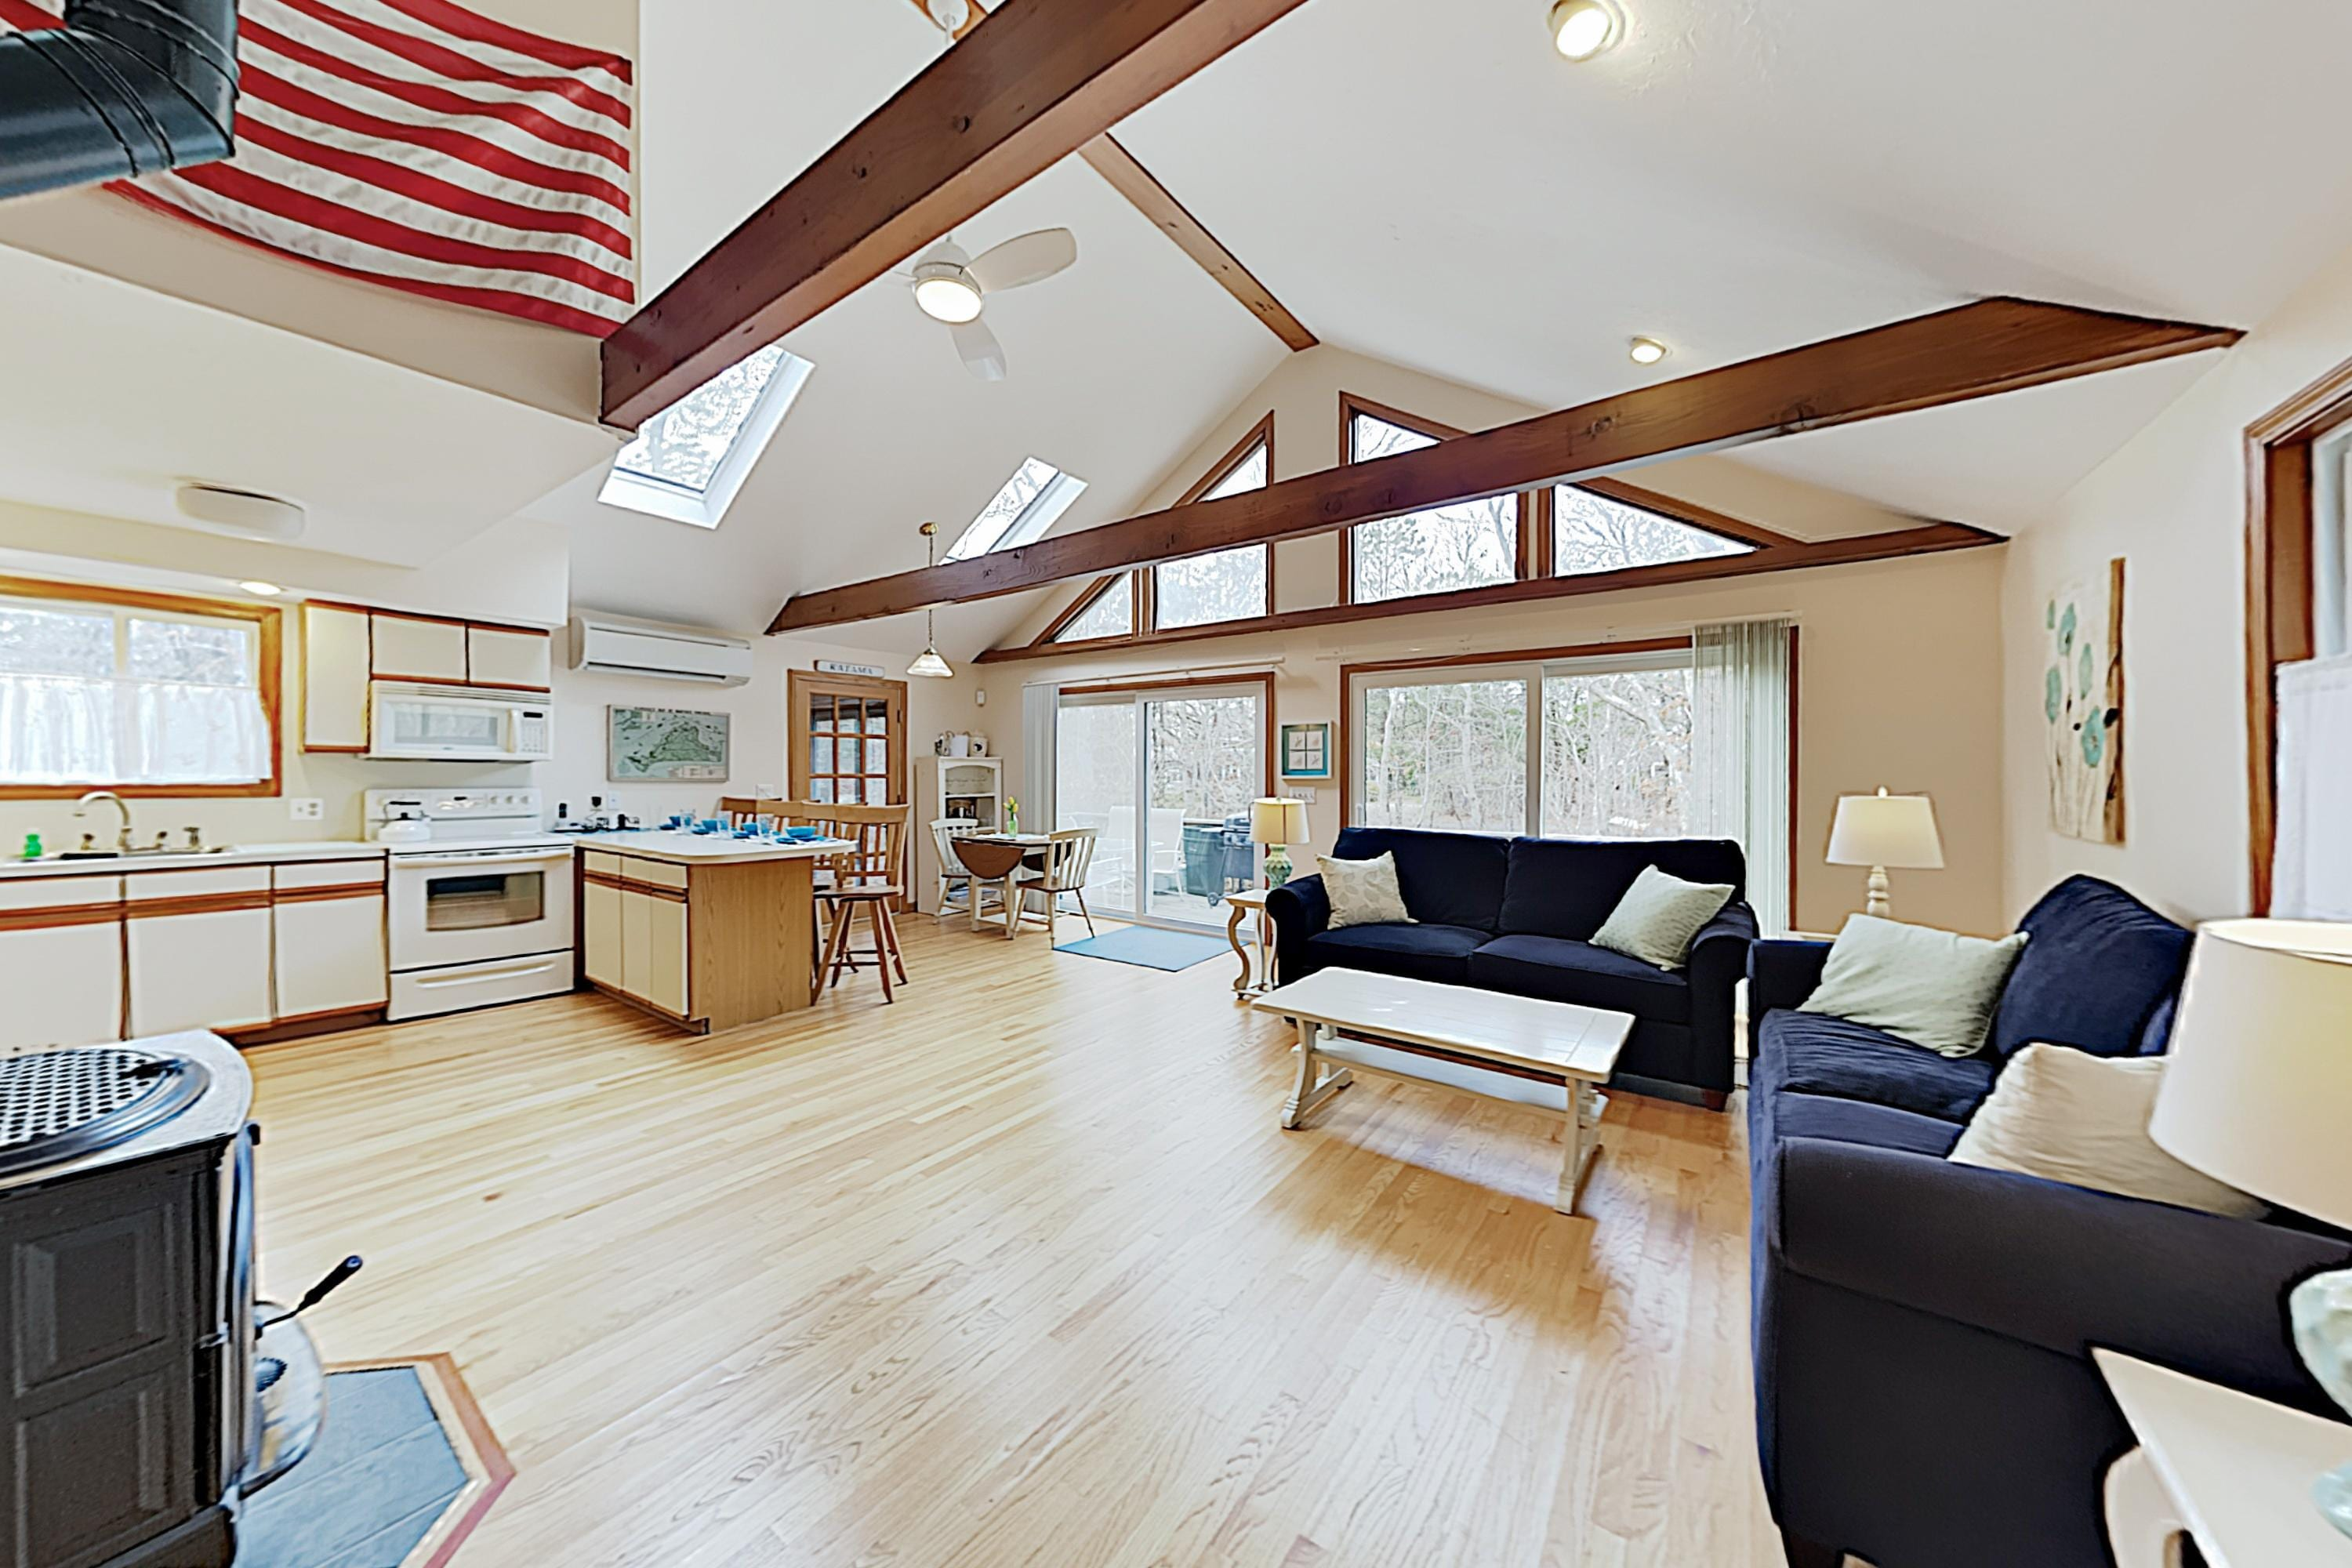 Welcome to Edgartown! This home is professionally managed by TurnKey Vacation Rentals.